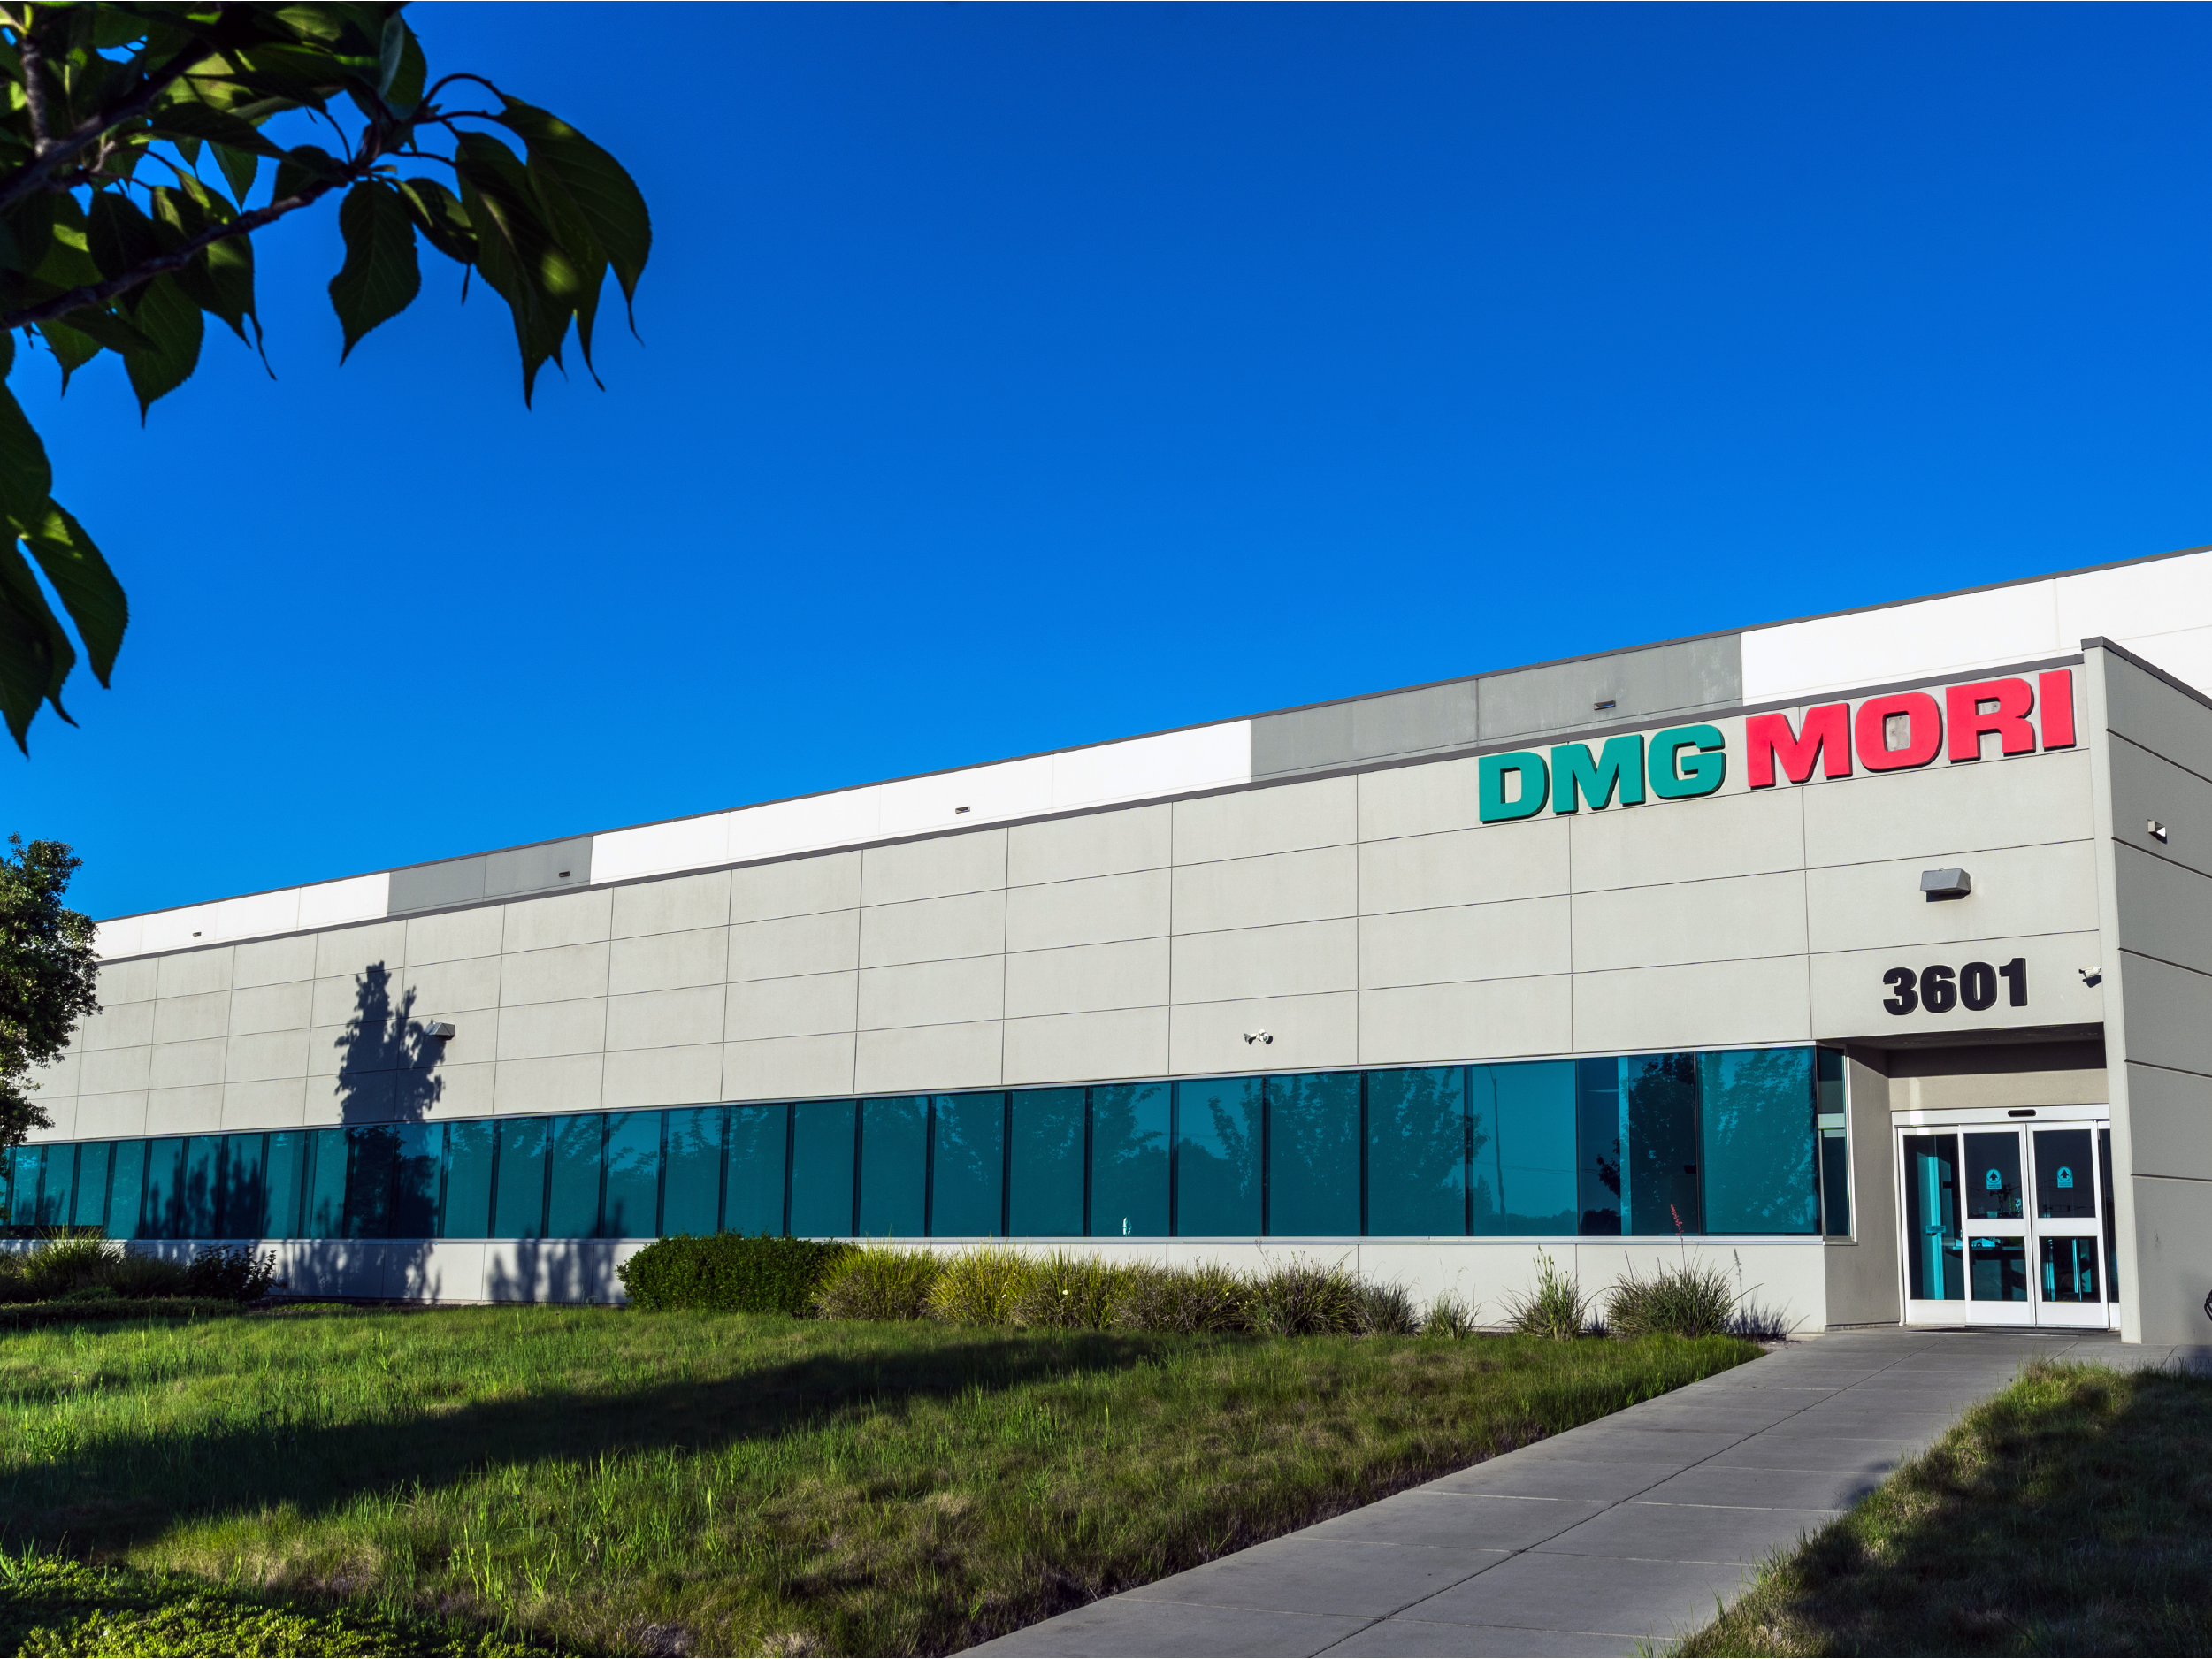 DMG MORI Manufacturing USA Increases Manufacturing Capabilities by Investing in New Equipment and Consolidating Production